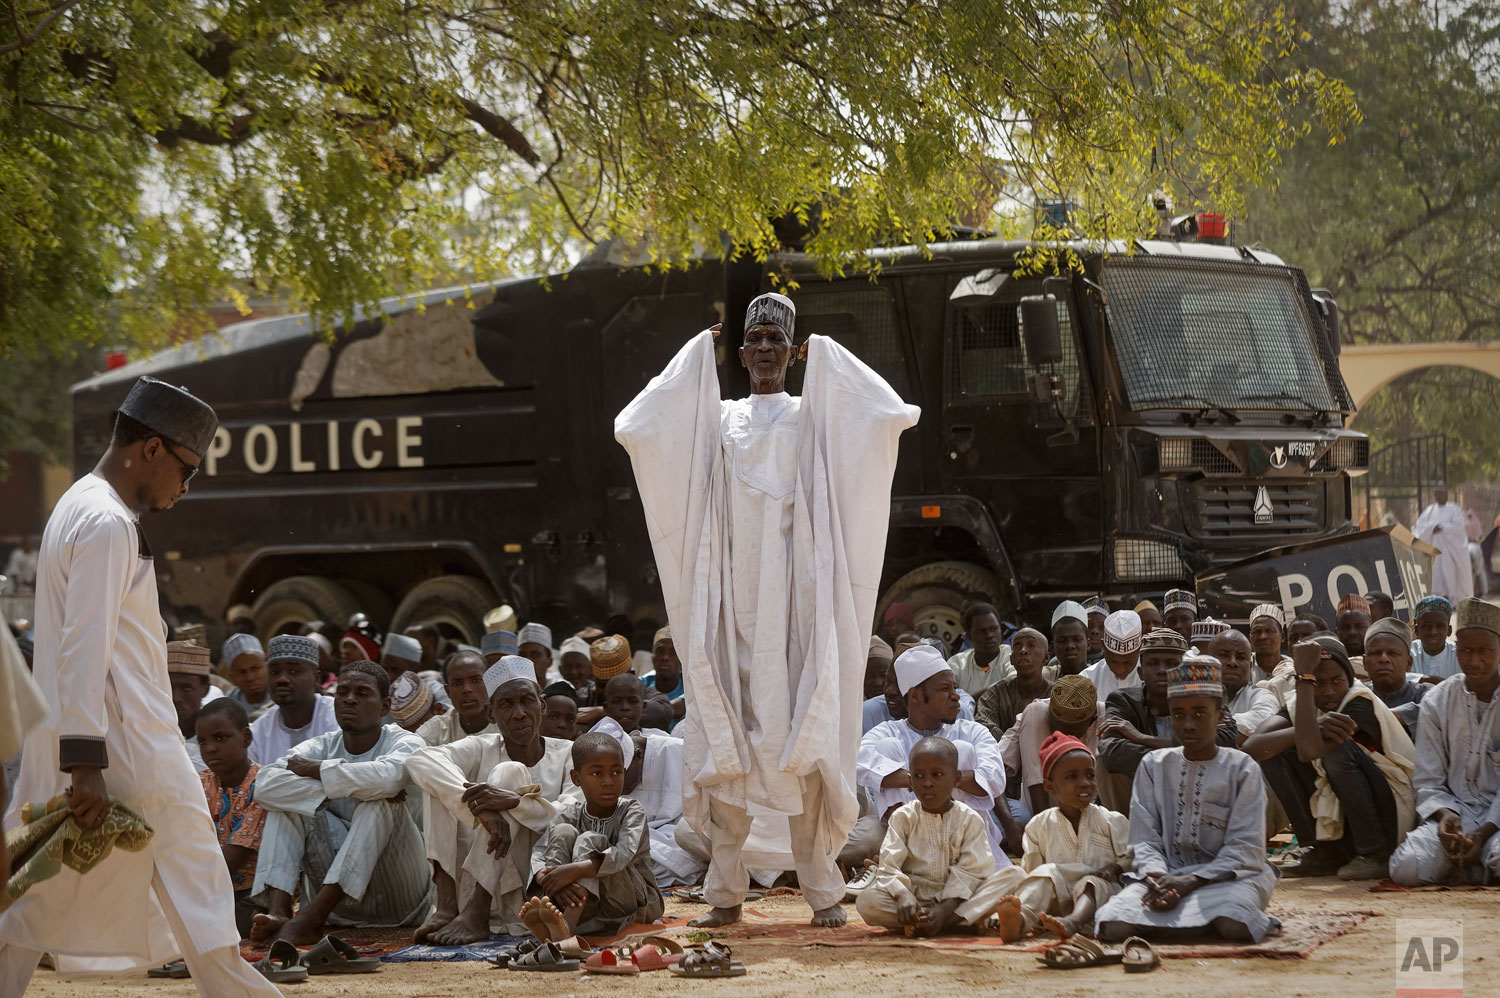 Muslims make traditional Friday prayers in front of a police riot truck, providing security due to the ongoing general threat of attacks by Islamic extremist group Boko Haram, at a mosque near to the Emir's palace in Kano, northern Nigeria Friday, February 15, 2019. Nigerians were preparing to go to the polls for a presidential election, one week after a surprise delay for Africa's largest democracy. (AP Photo/Ben Curtis)